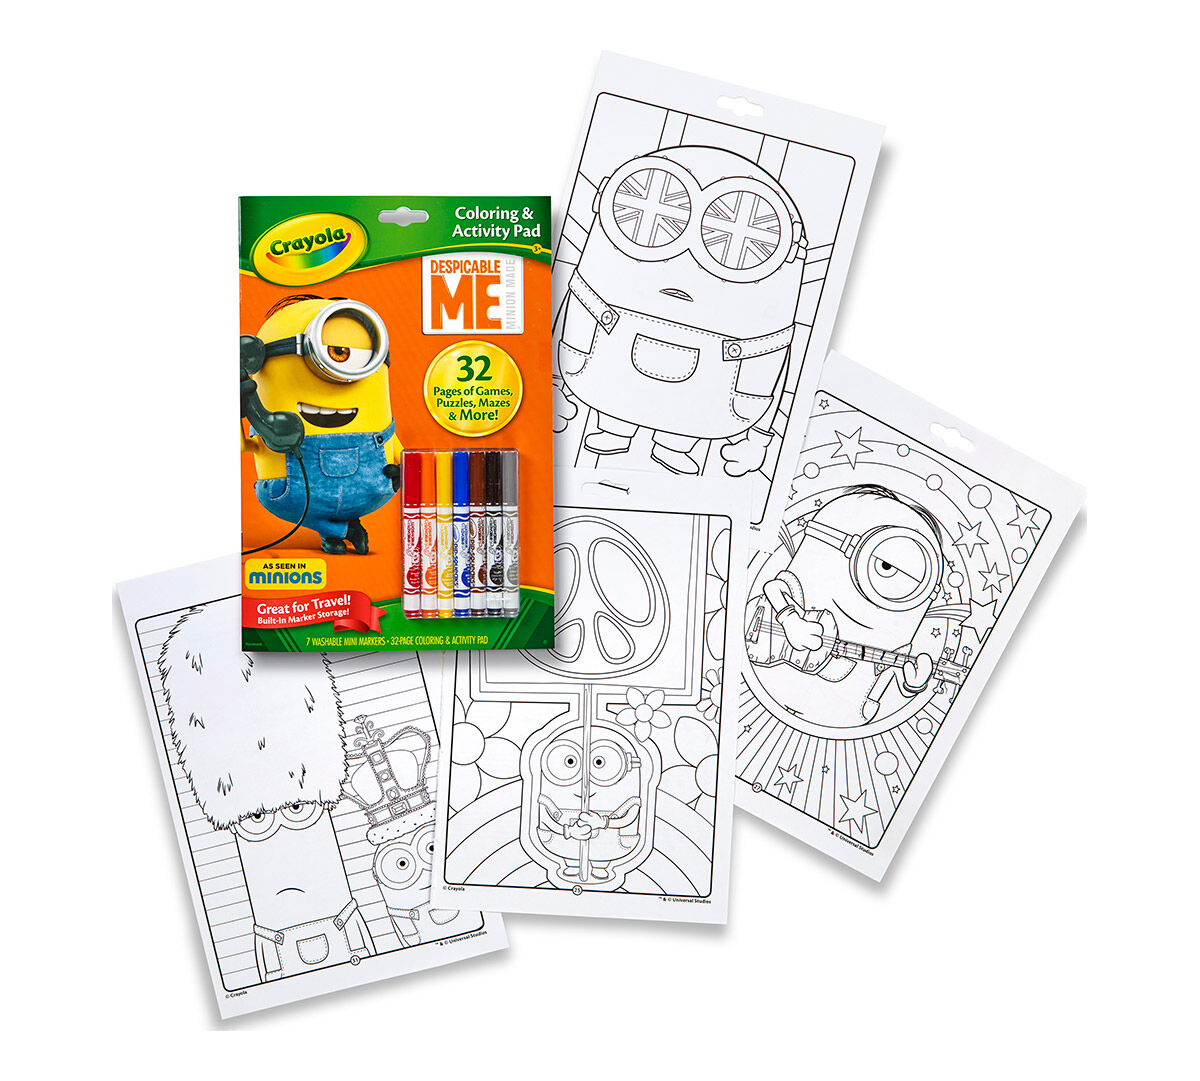 25 Despicable Me 3 Click The Minion From Despicable Me 3 Coloring Pages To View Printable